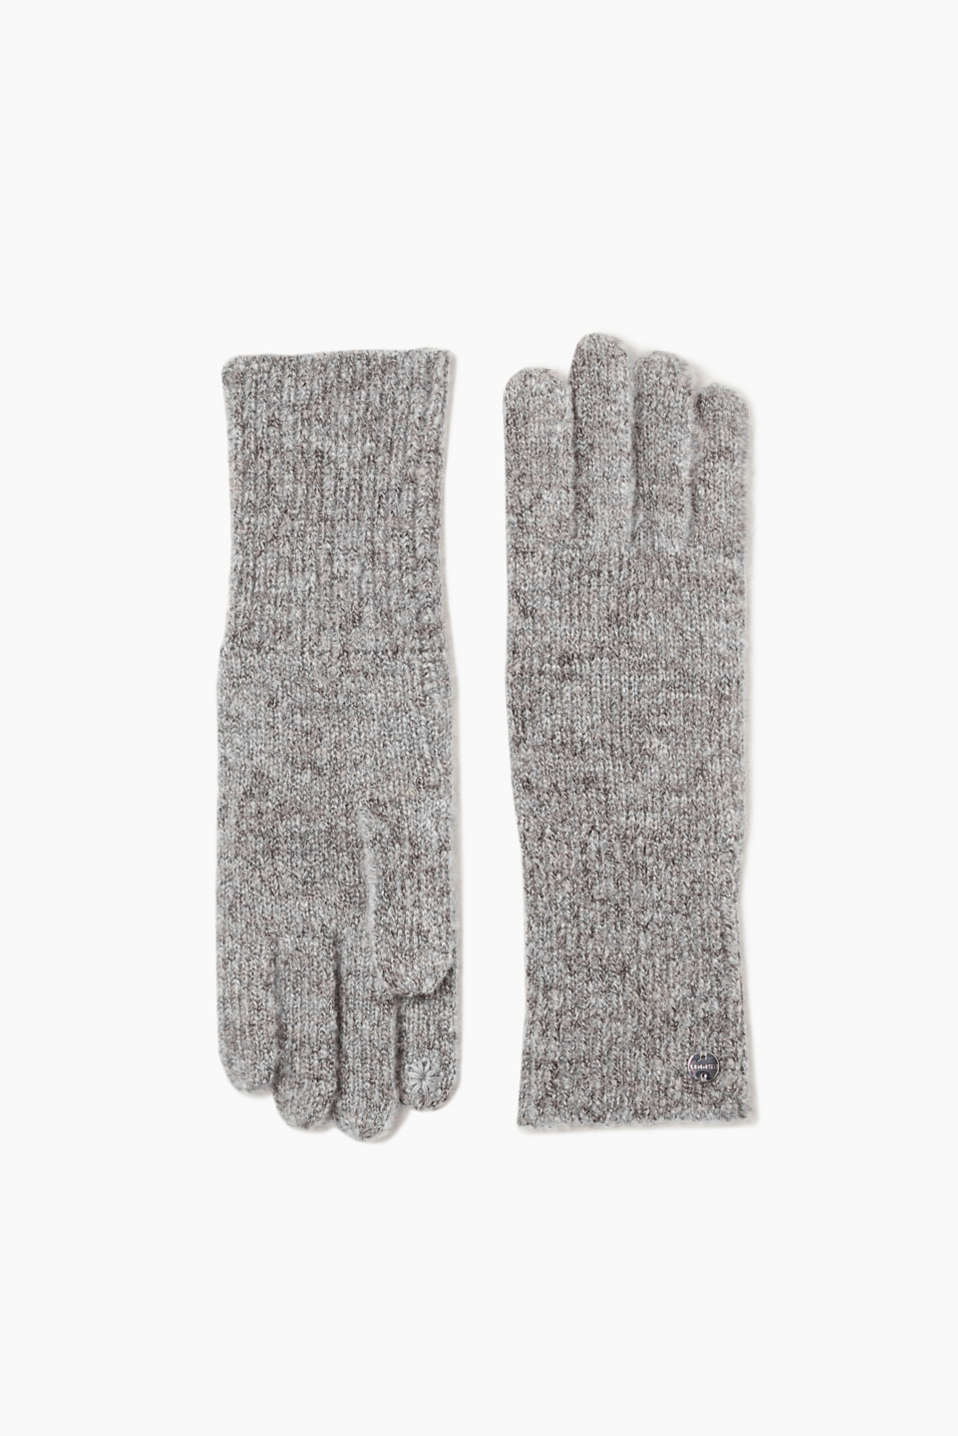 We love knitwear! These lightweight knitted gloves are a winter basic.